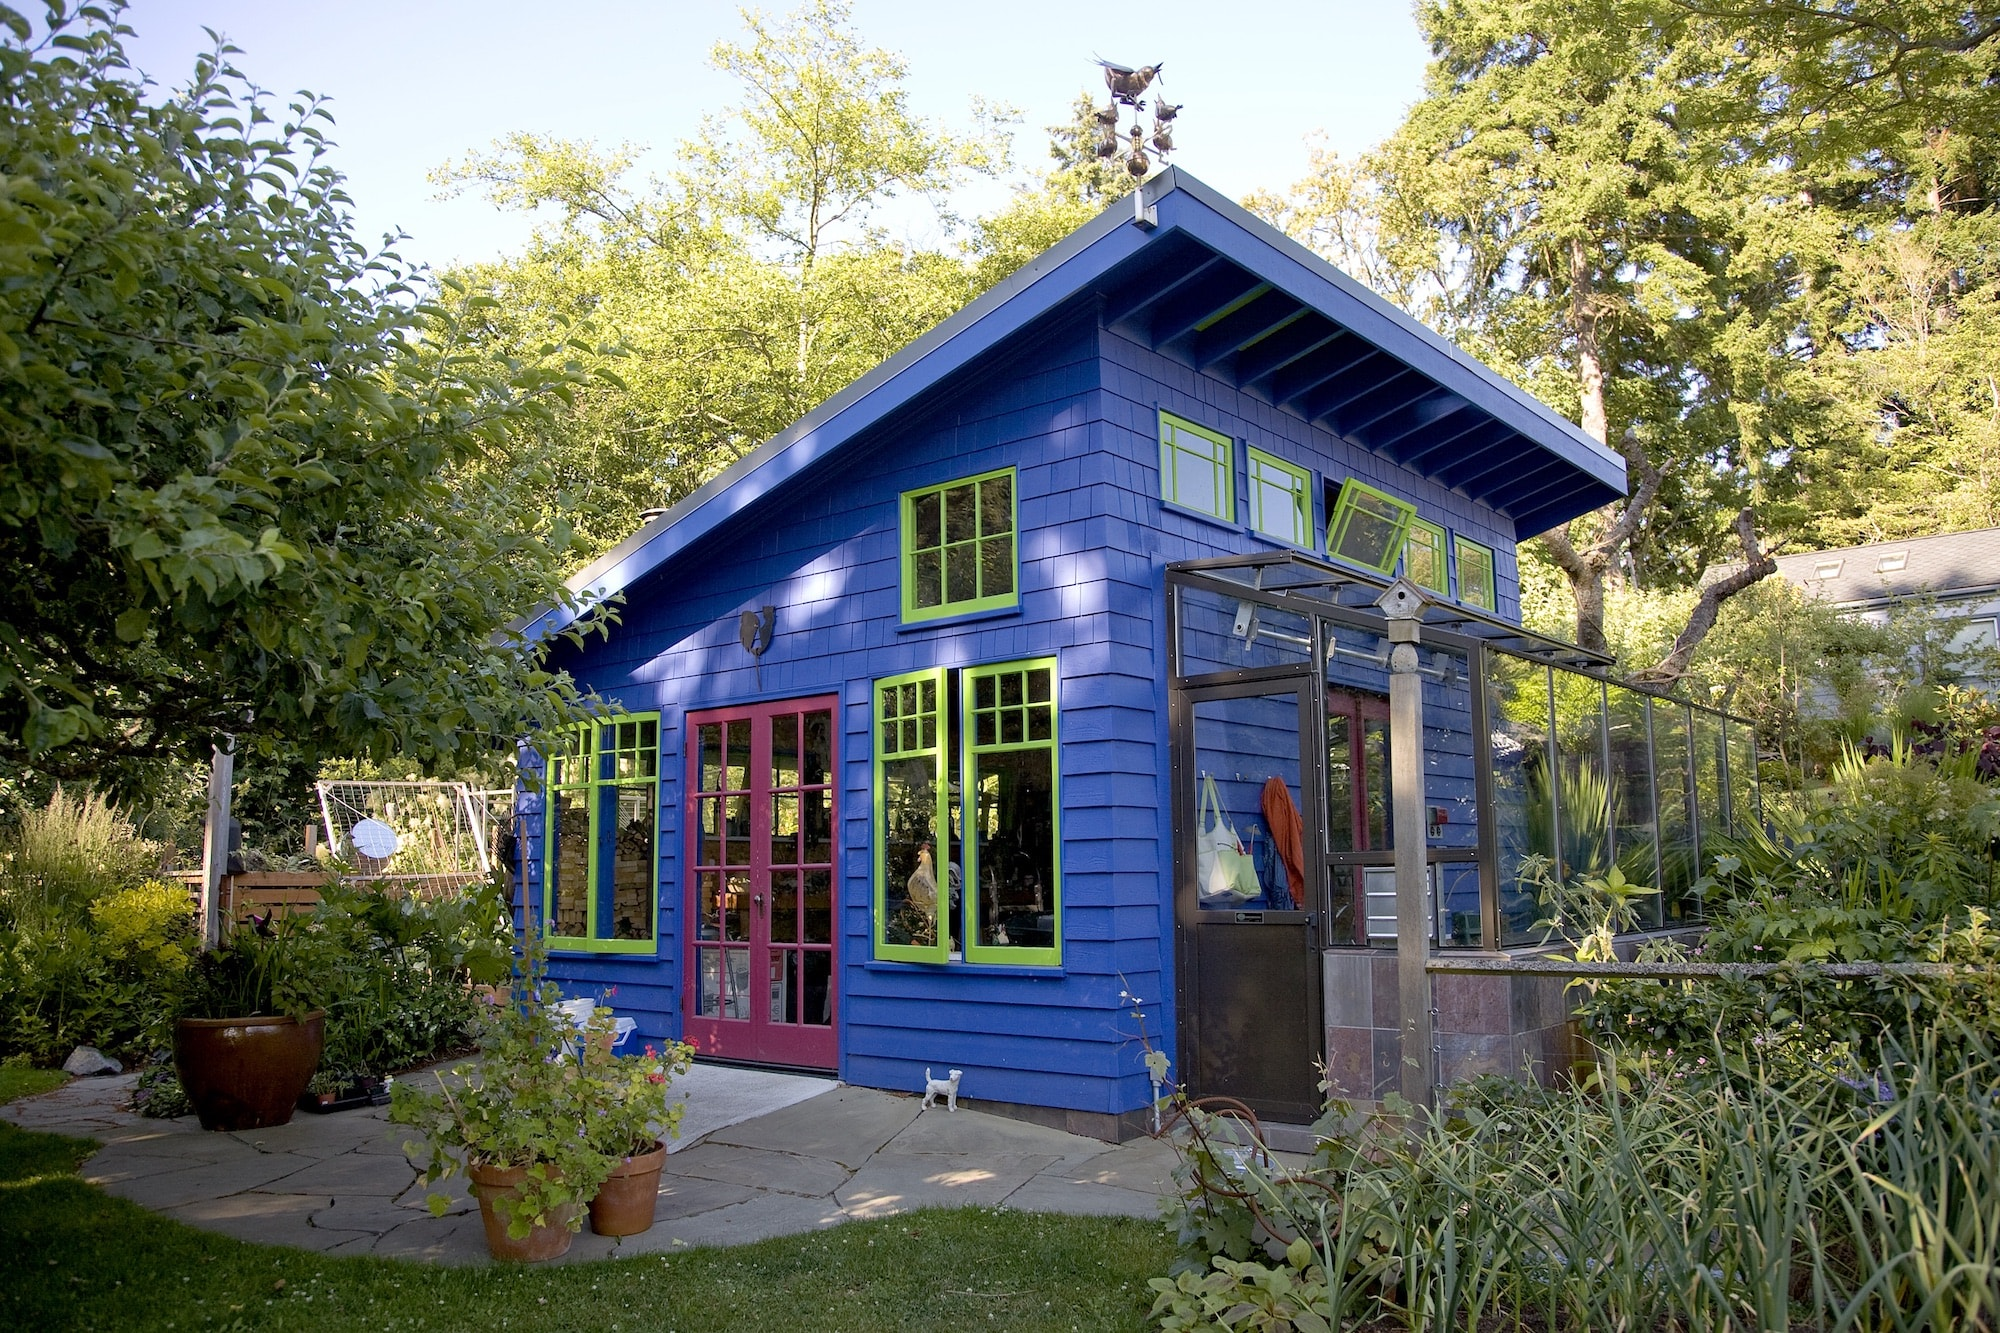 Our First Project - 13 years ago, we took on our first project as Crescent Builds. We knew we had a passion for creating beautiful spaces for people to live and work in, and we wanted that passion to be reflected in our work. We started with a custom designed and built craftsman garden shed, with bold lines, bright colors, and a lot of character. Since that first project we have grown, and now, after more than 10 years in business, we look back on our first project and realize that while our team has grown and changed, our passion for the work we do is still as strong as it ever was.